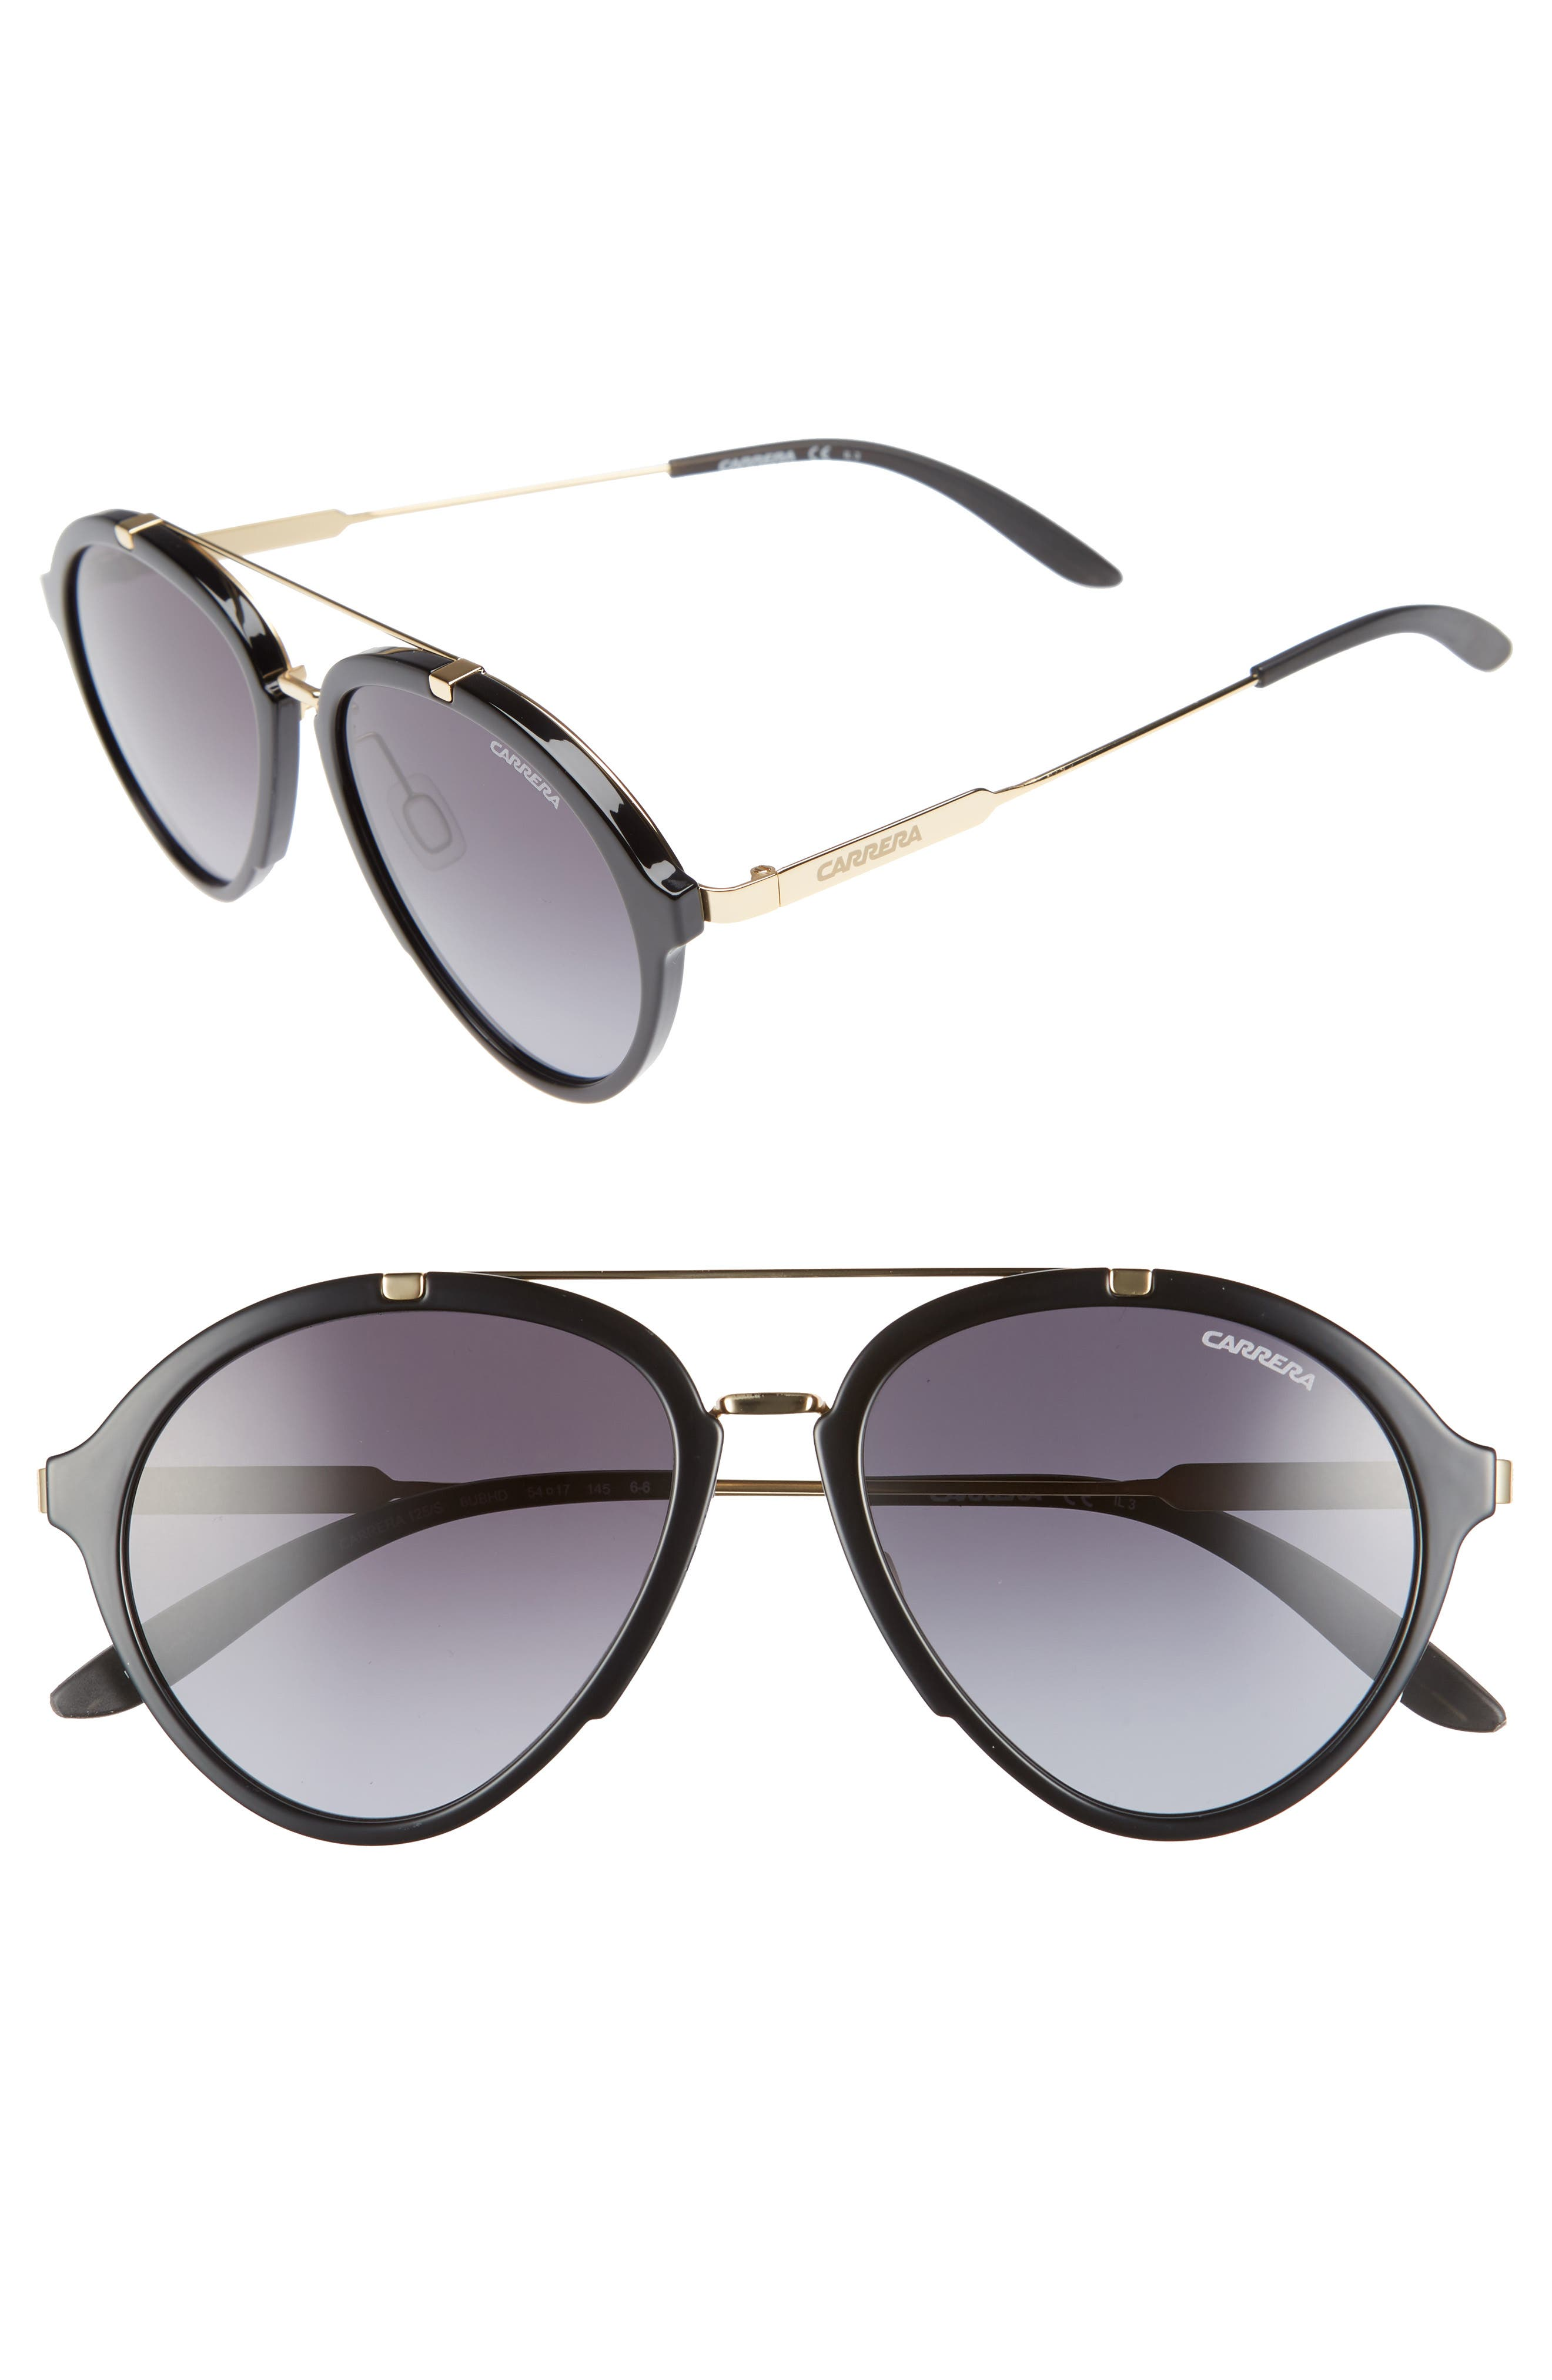 54mm Aviator Sunglasses,                         Main,                         color, 001